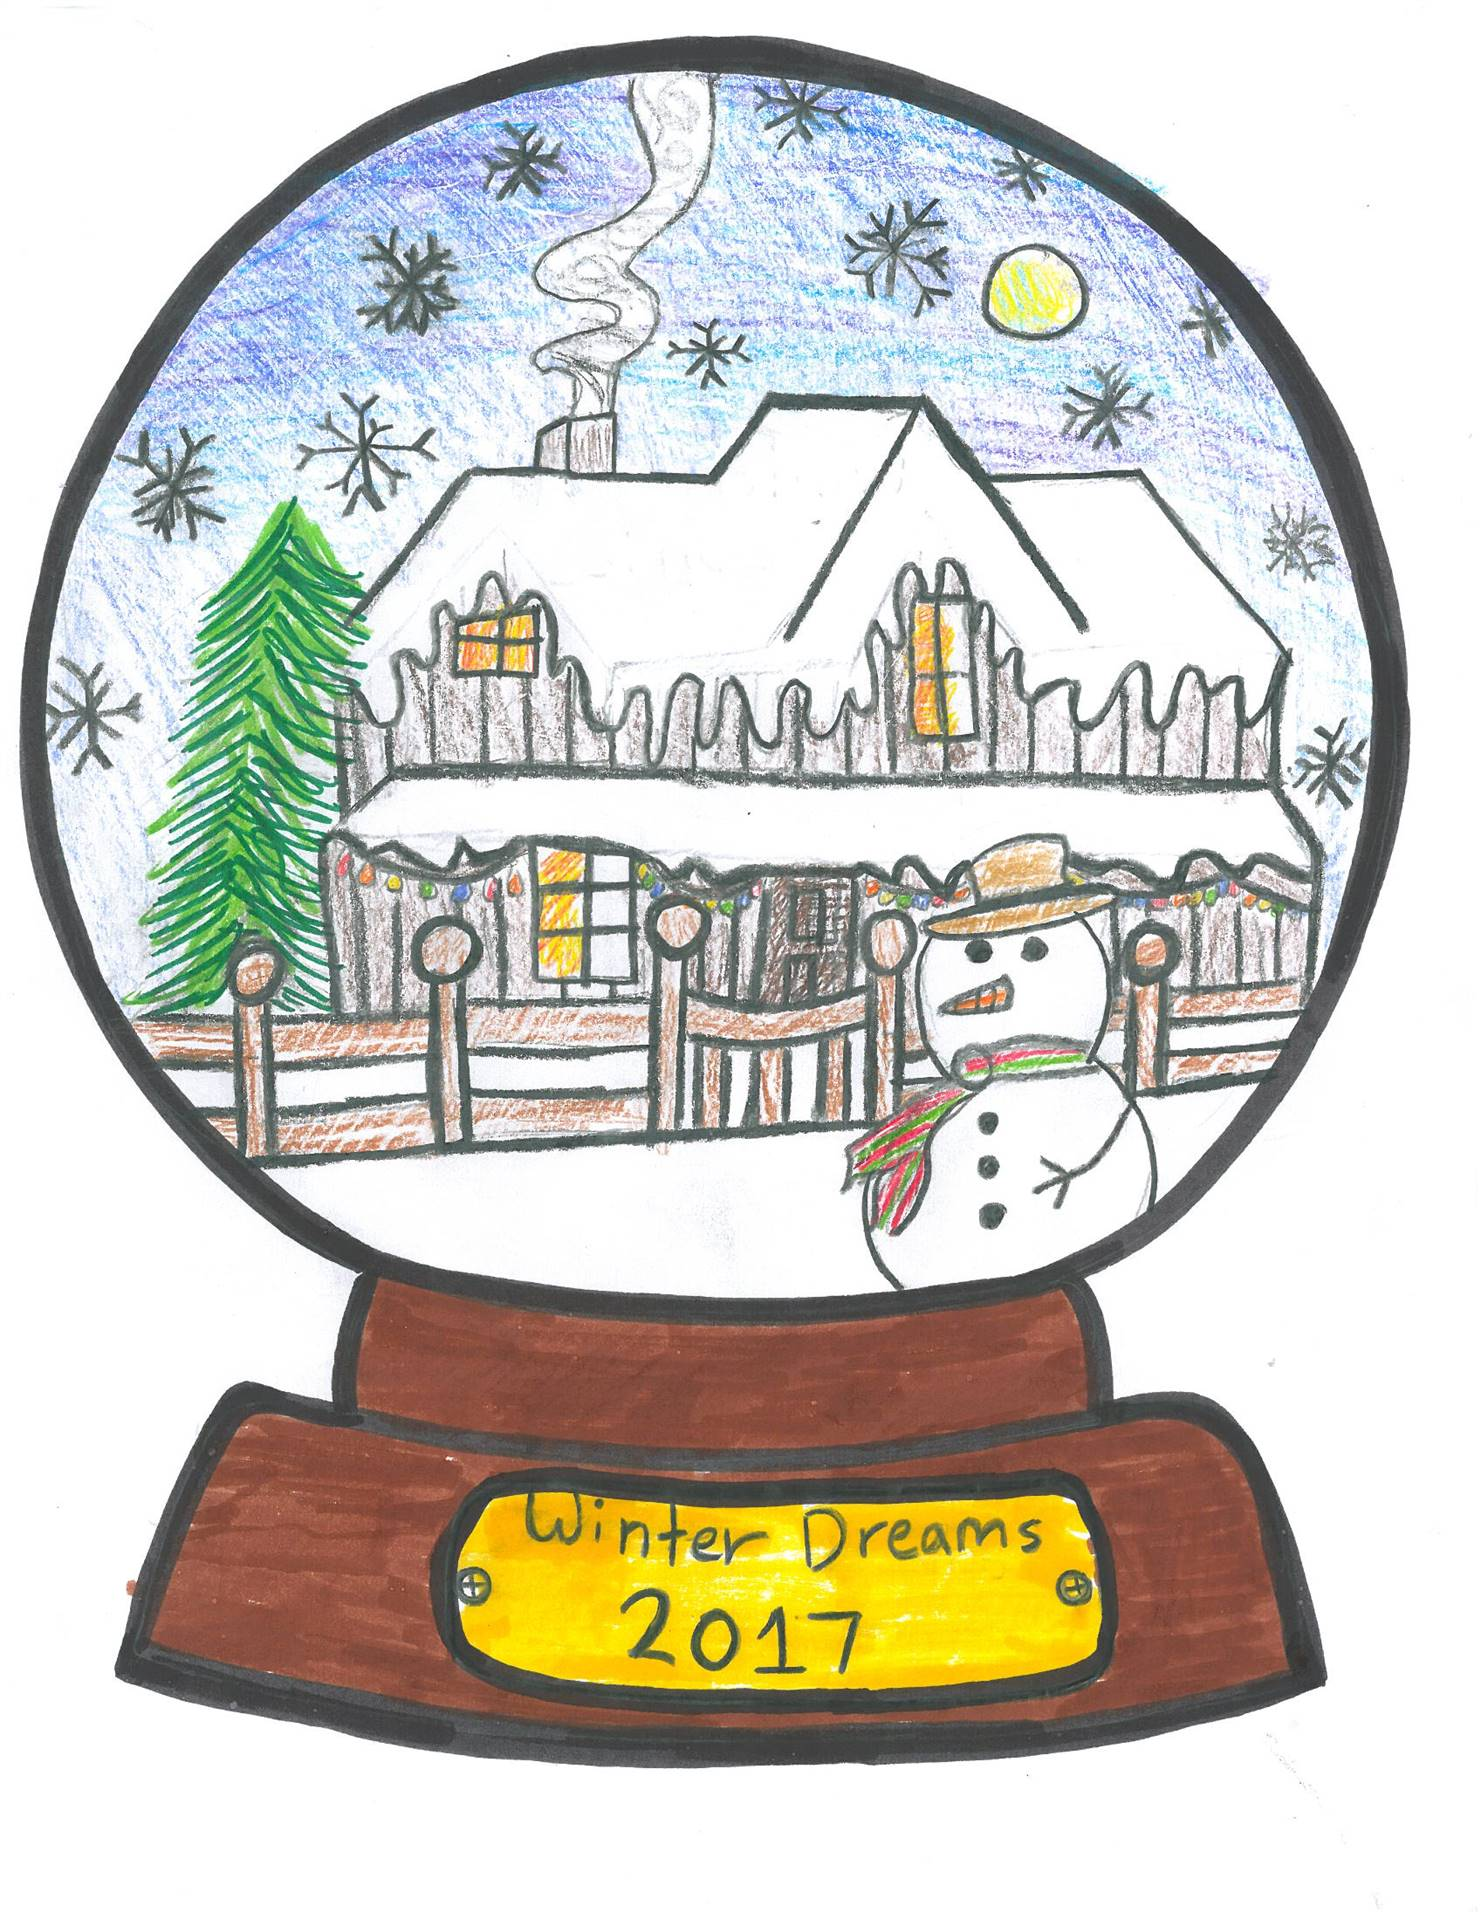 Artwork of snowman in a snowglobe for holiday card contest